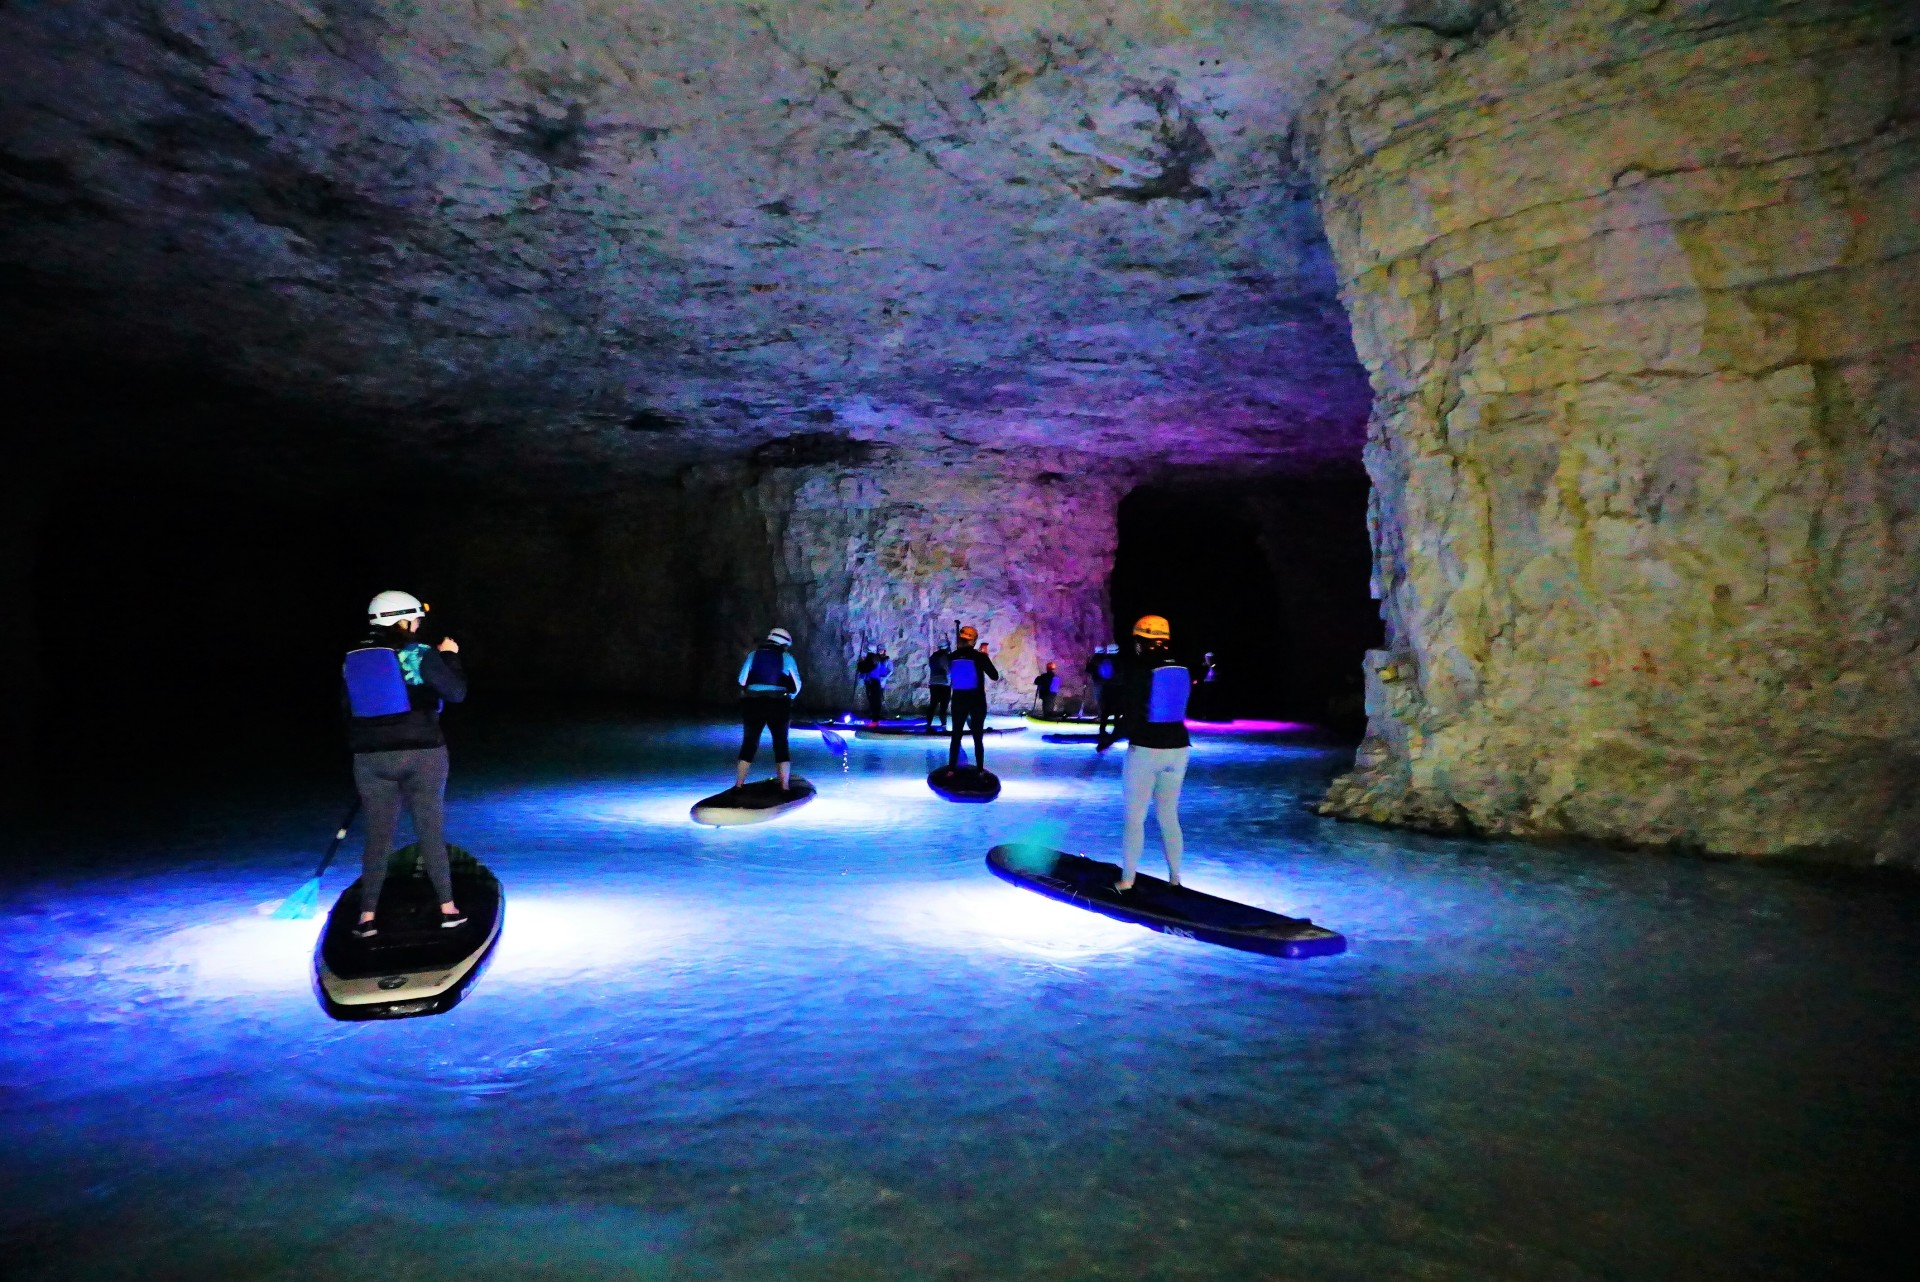 Paddleboard kentucky, Cavern glow, SUP KY, Stand up Paddle